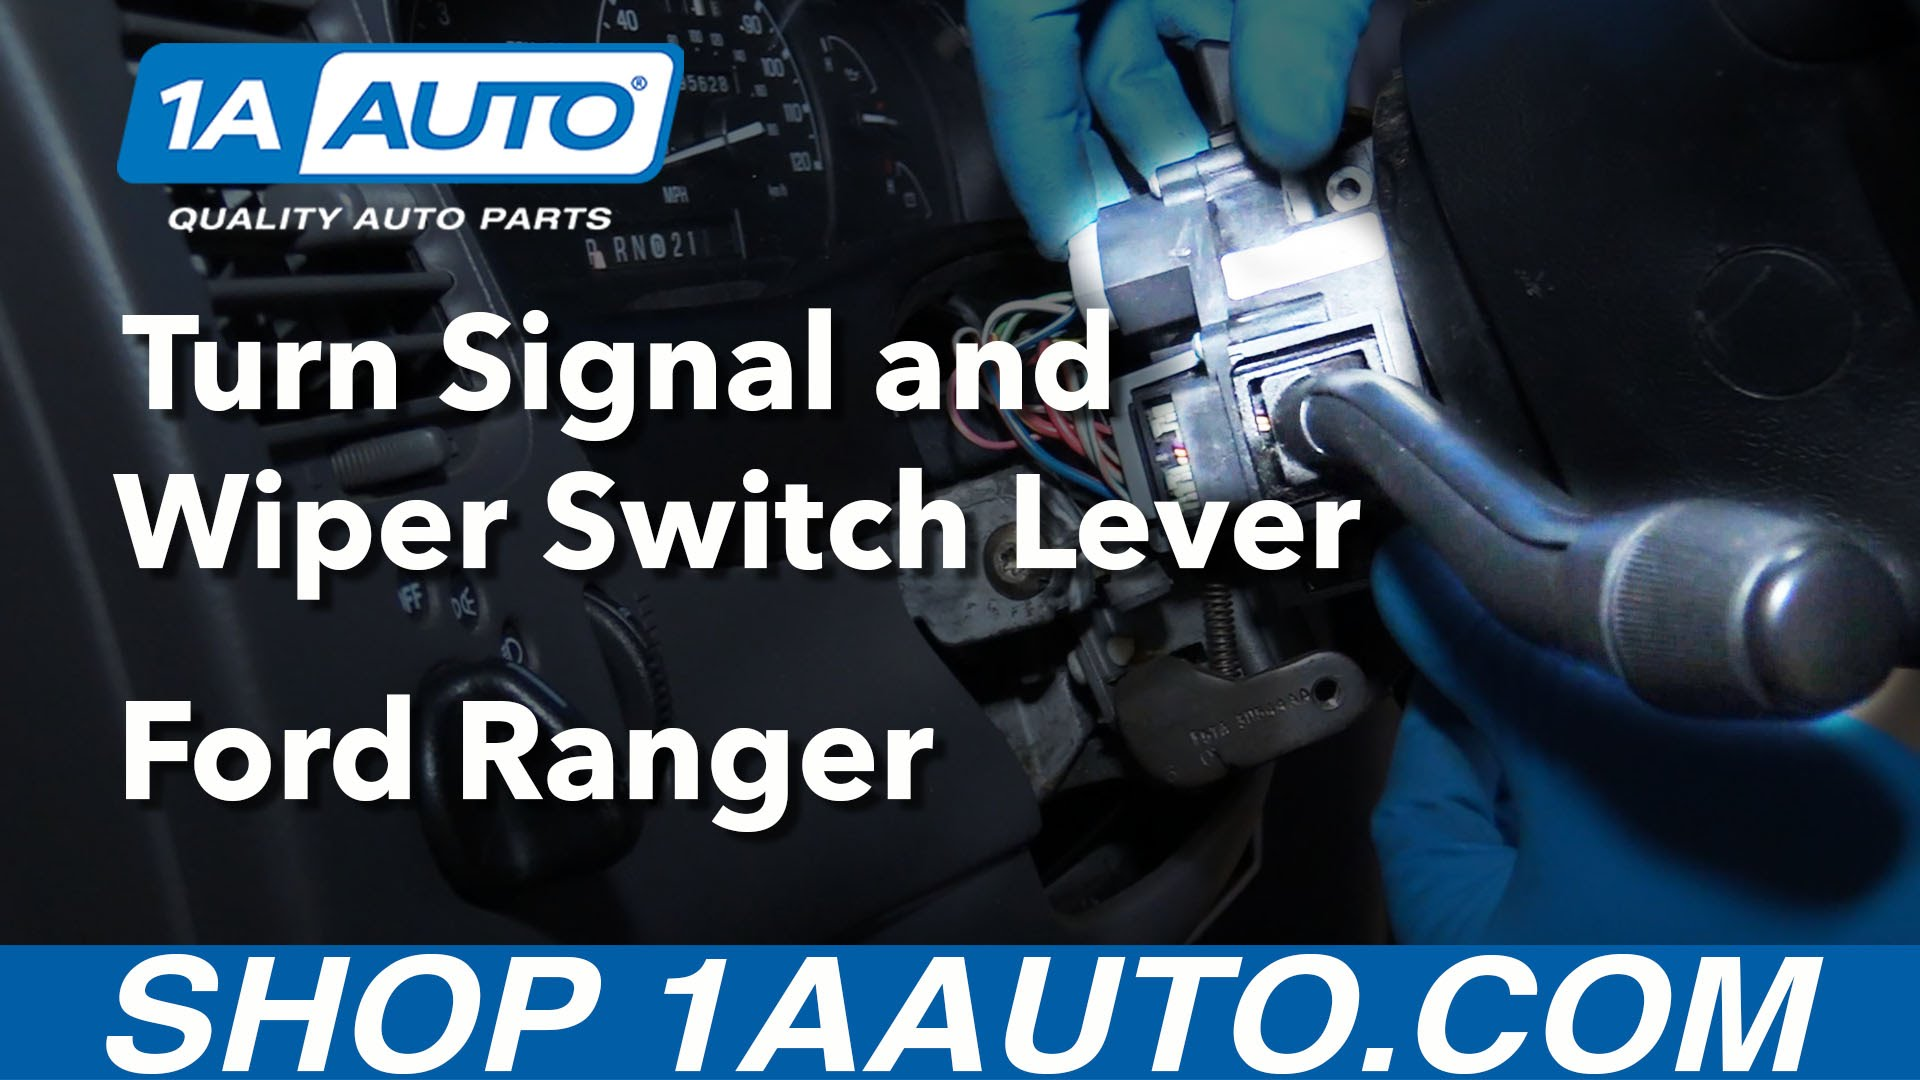 How to Replace Turn Signal Wiper Switch Lever 99-03 Ford Ranger